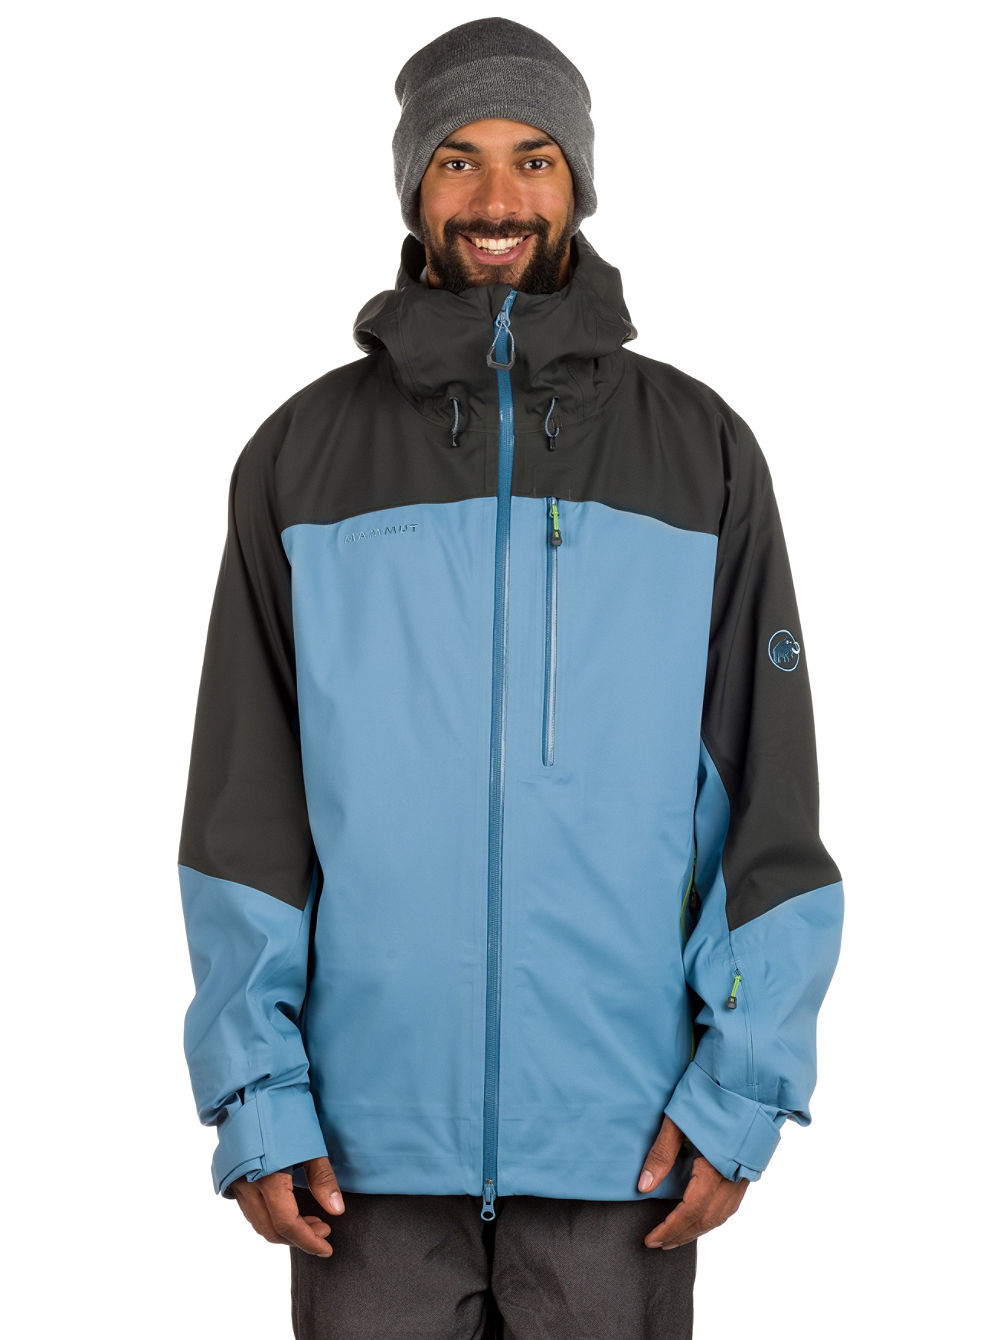 Alvier Tour Hs Hooded Jacket